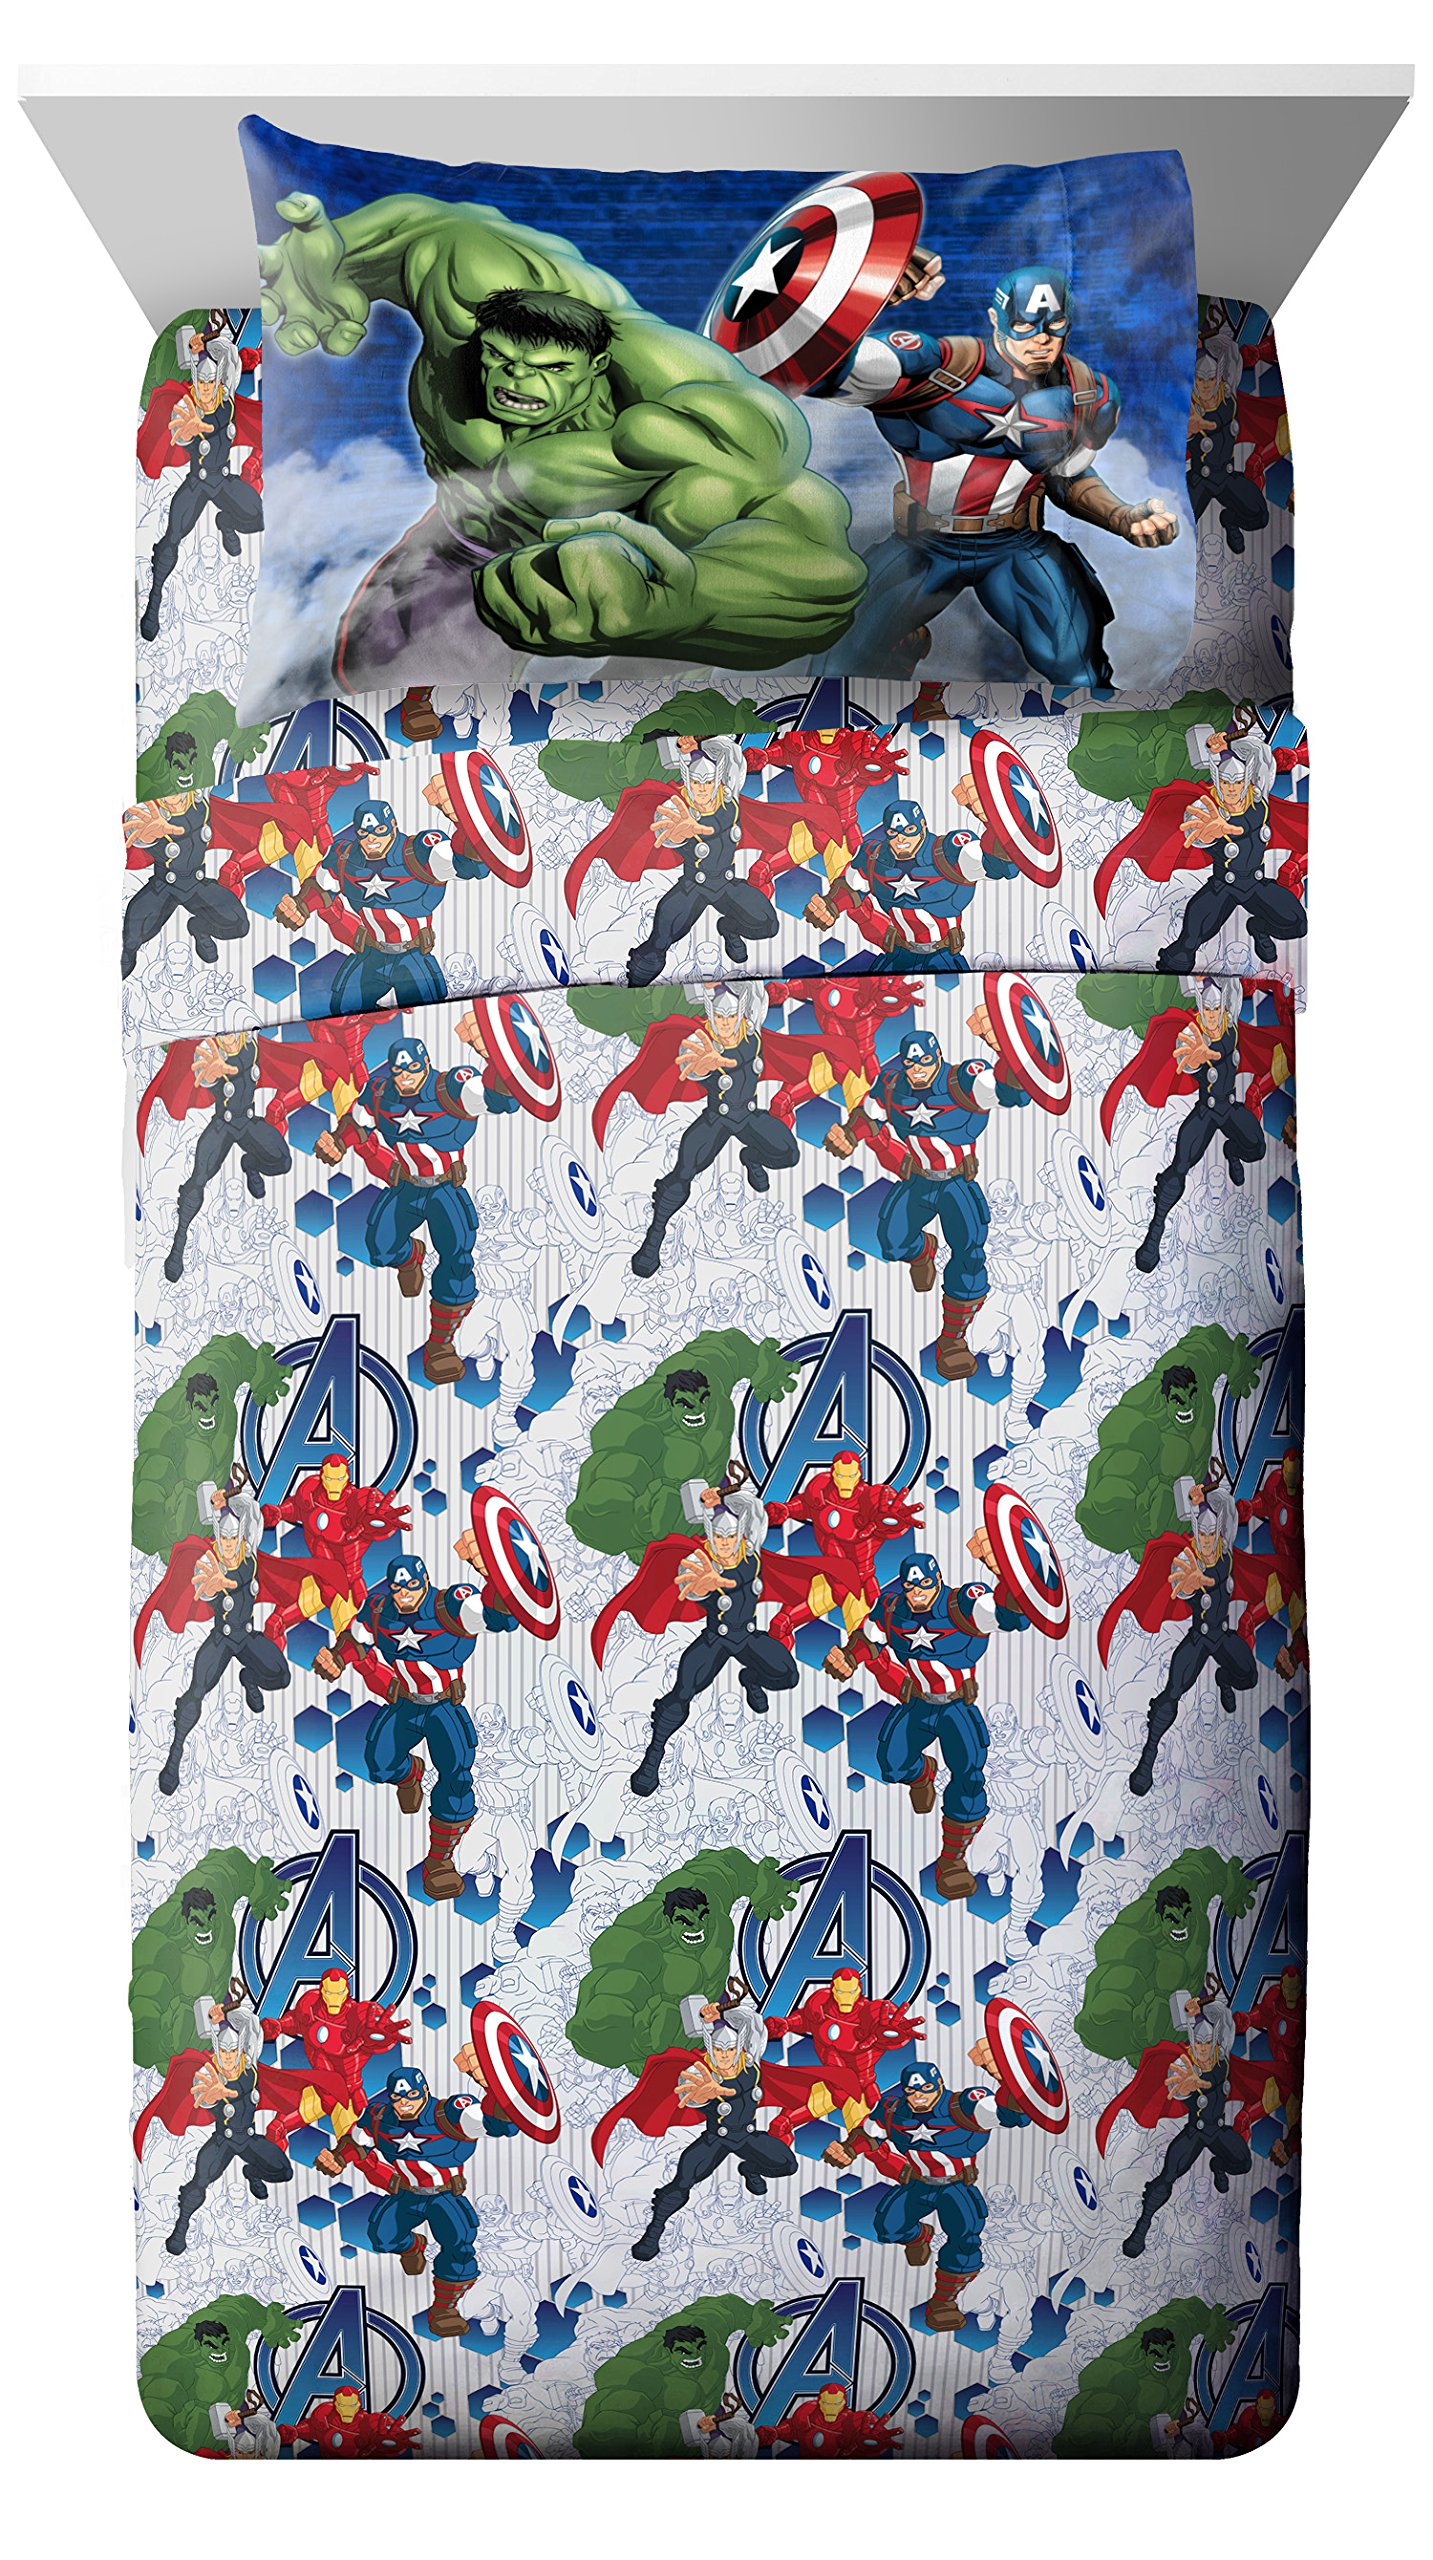 Marvel Avengers Blue Circle Twin Sheet Set- 3 Piece Set Super Soft and Cozy Kid's Bedding Features Captain America, Hulk, Iron Man, and Thor- Fade Resistant Microfiber Sheets (Official Marvel Product) by Jay Franco